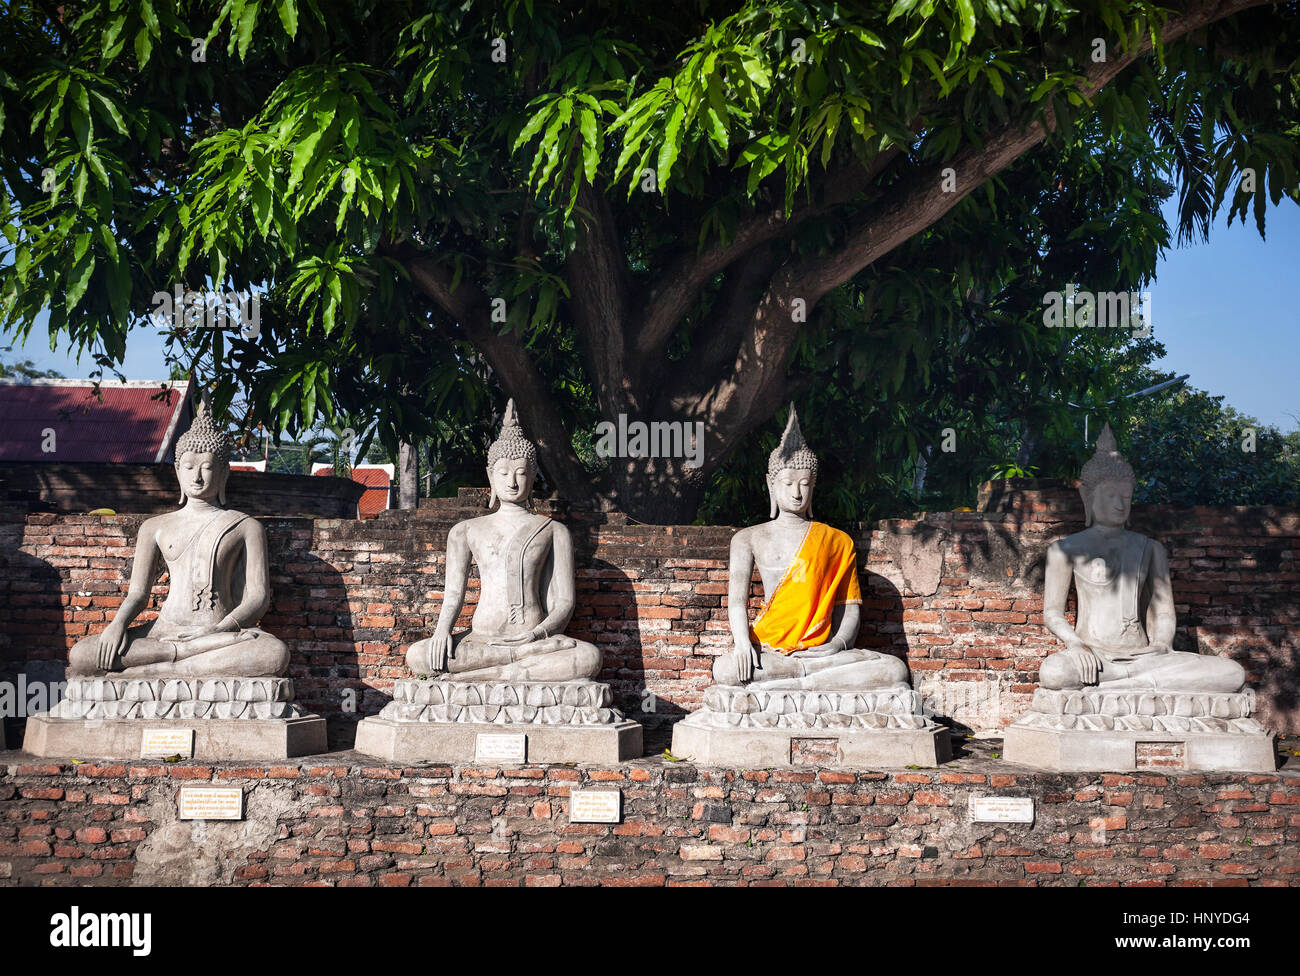 Buddha statues under the tree, one with yellow stripe in Wat Yai Chai Mongkol monastery in Ayuttaya, Thailand - Stock Image